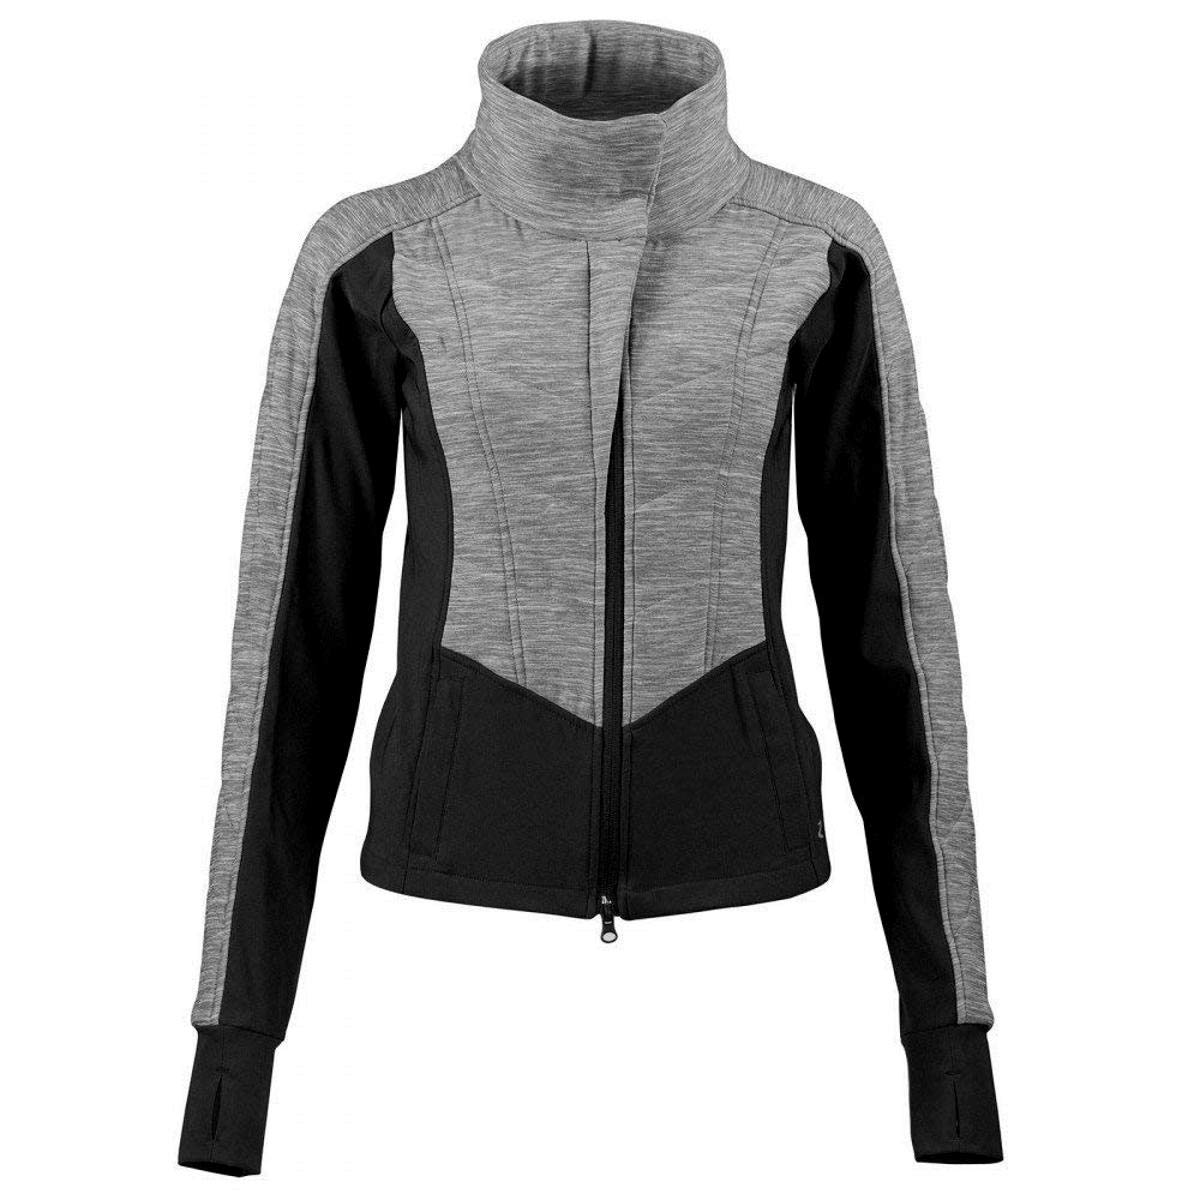 3412687d86 Horze Chloe Women's Light Padded Jacket with Stretch for Custom Fit